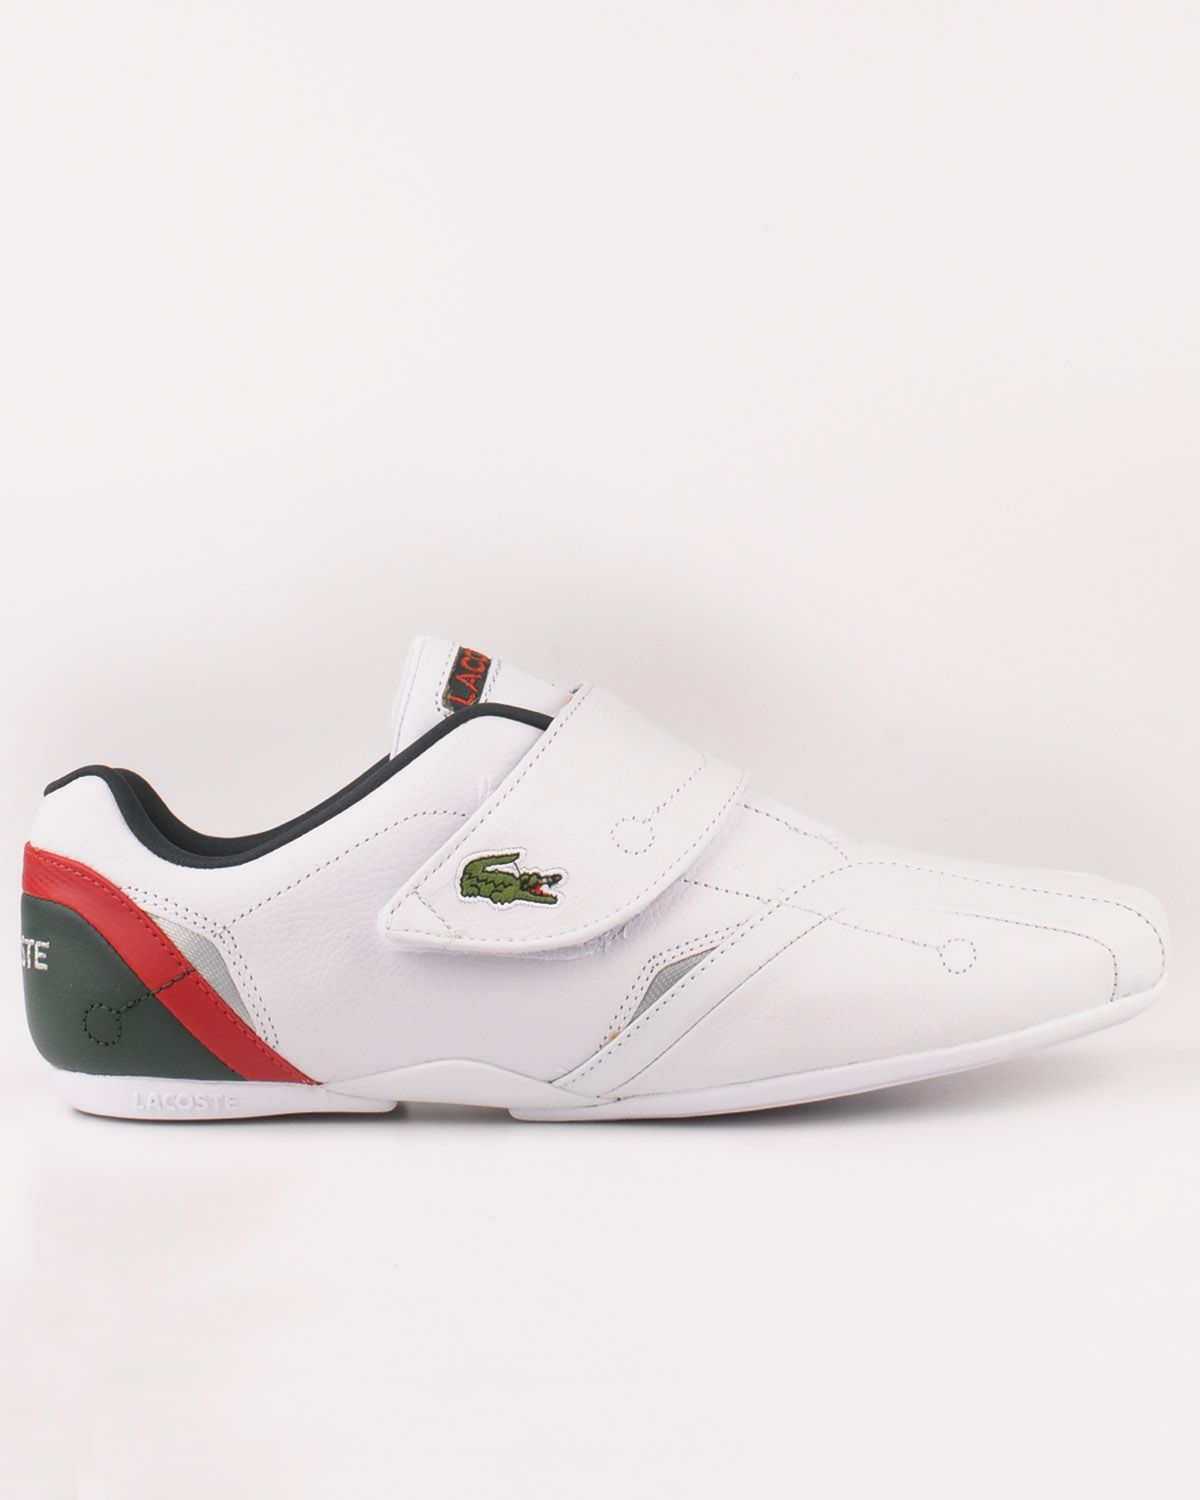 ec0eade58bc2d LACOSTE PROTECT SSP TRAINERS FOR MEN IN WHITE SILVER - Lacoste Trainers -  MelMorgan Sports